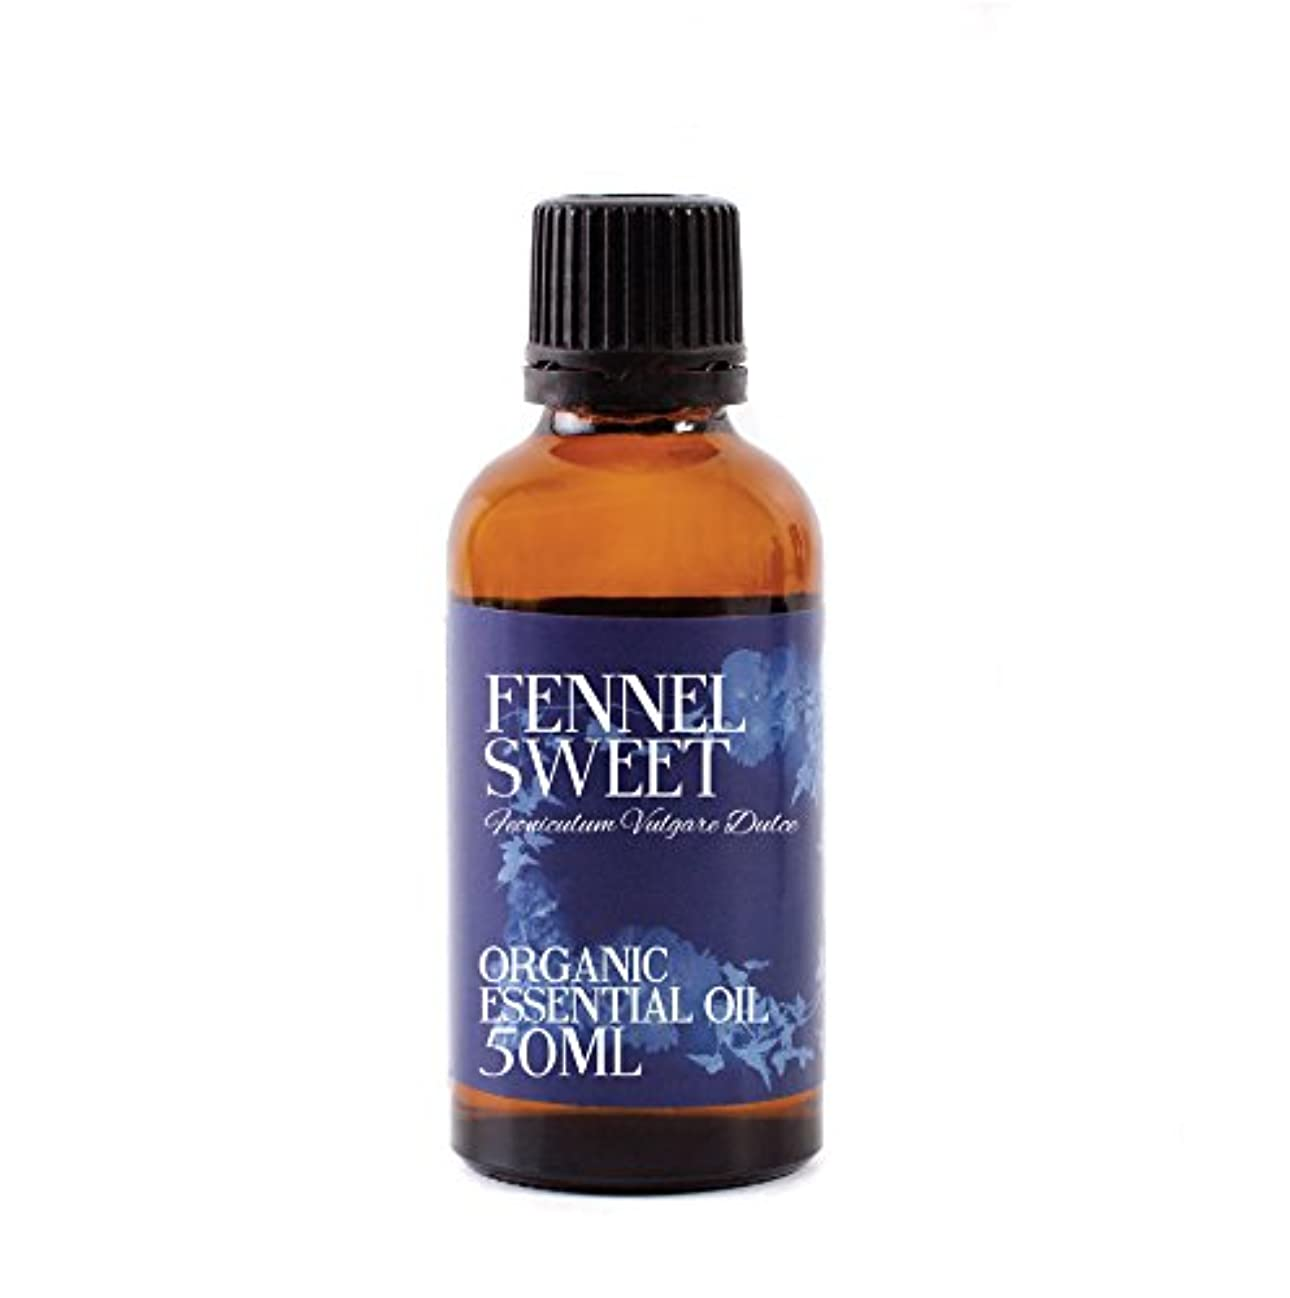 放棄ネコサンダースMystic Moments | Fennel Sweet Organic Essential Oil - 50ml - 100% Pure